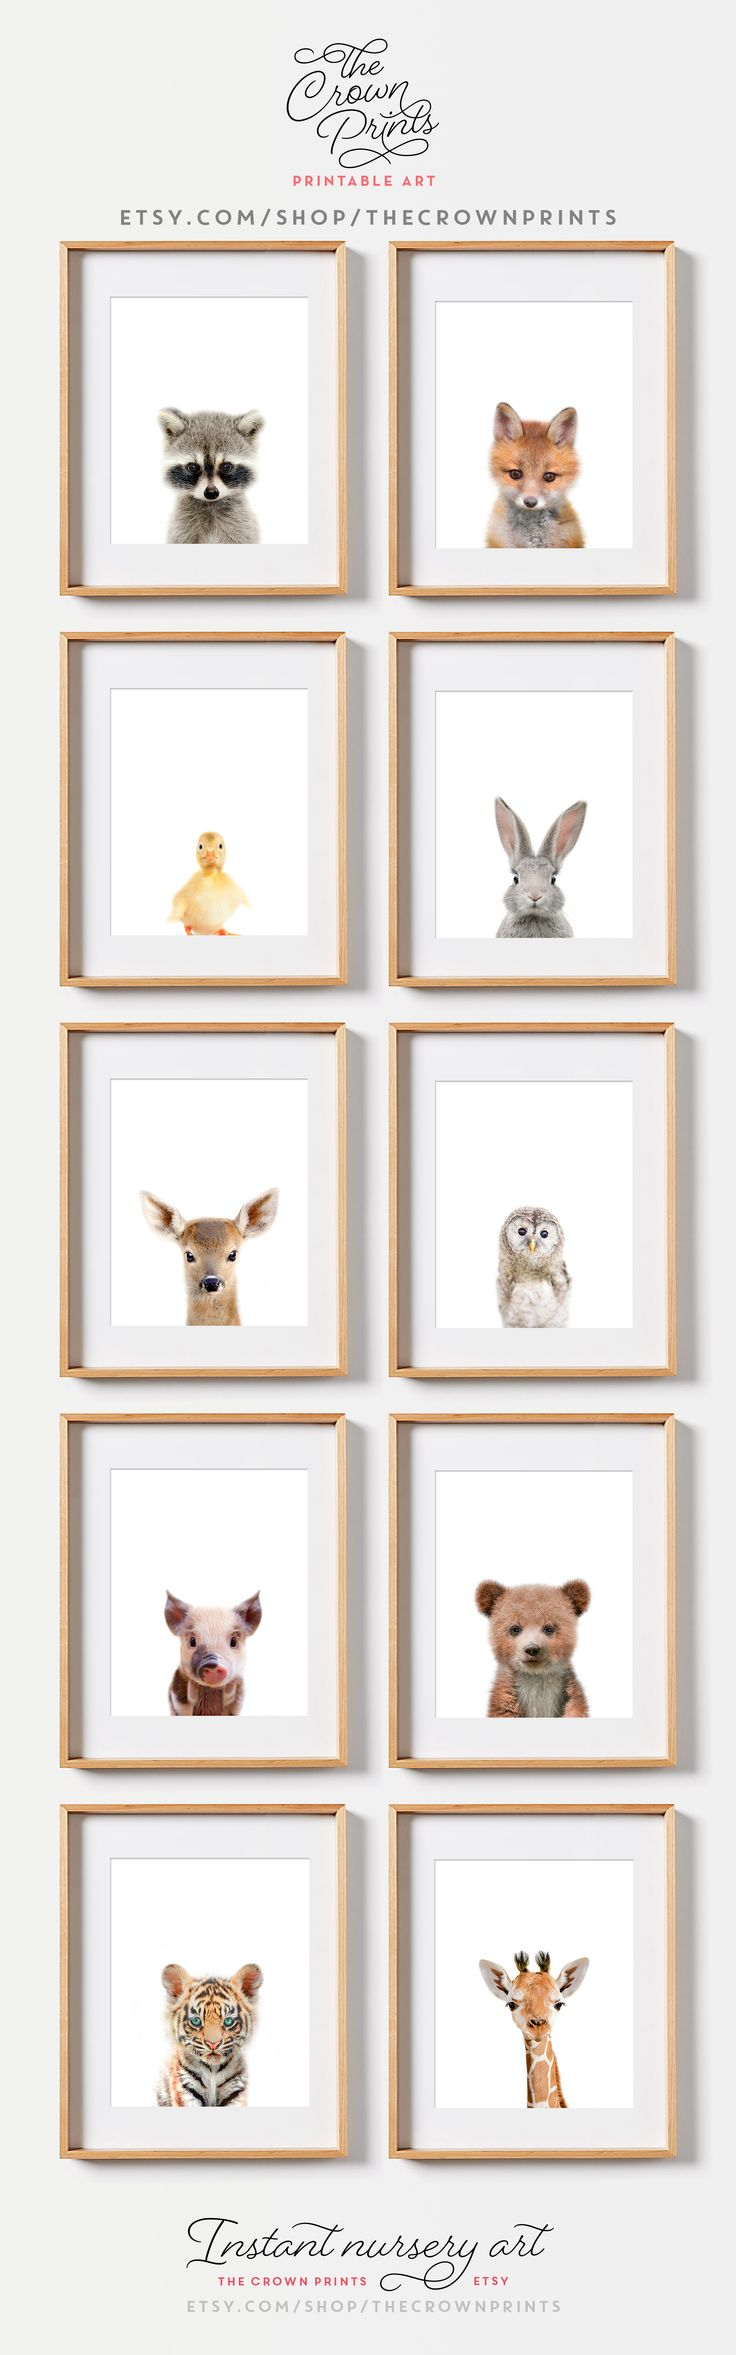 Woodland Animals, Safari Animals Nursery art from The Crown Prints on Etsy. Available as digital downloads OR have it printed and shipped to your home.